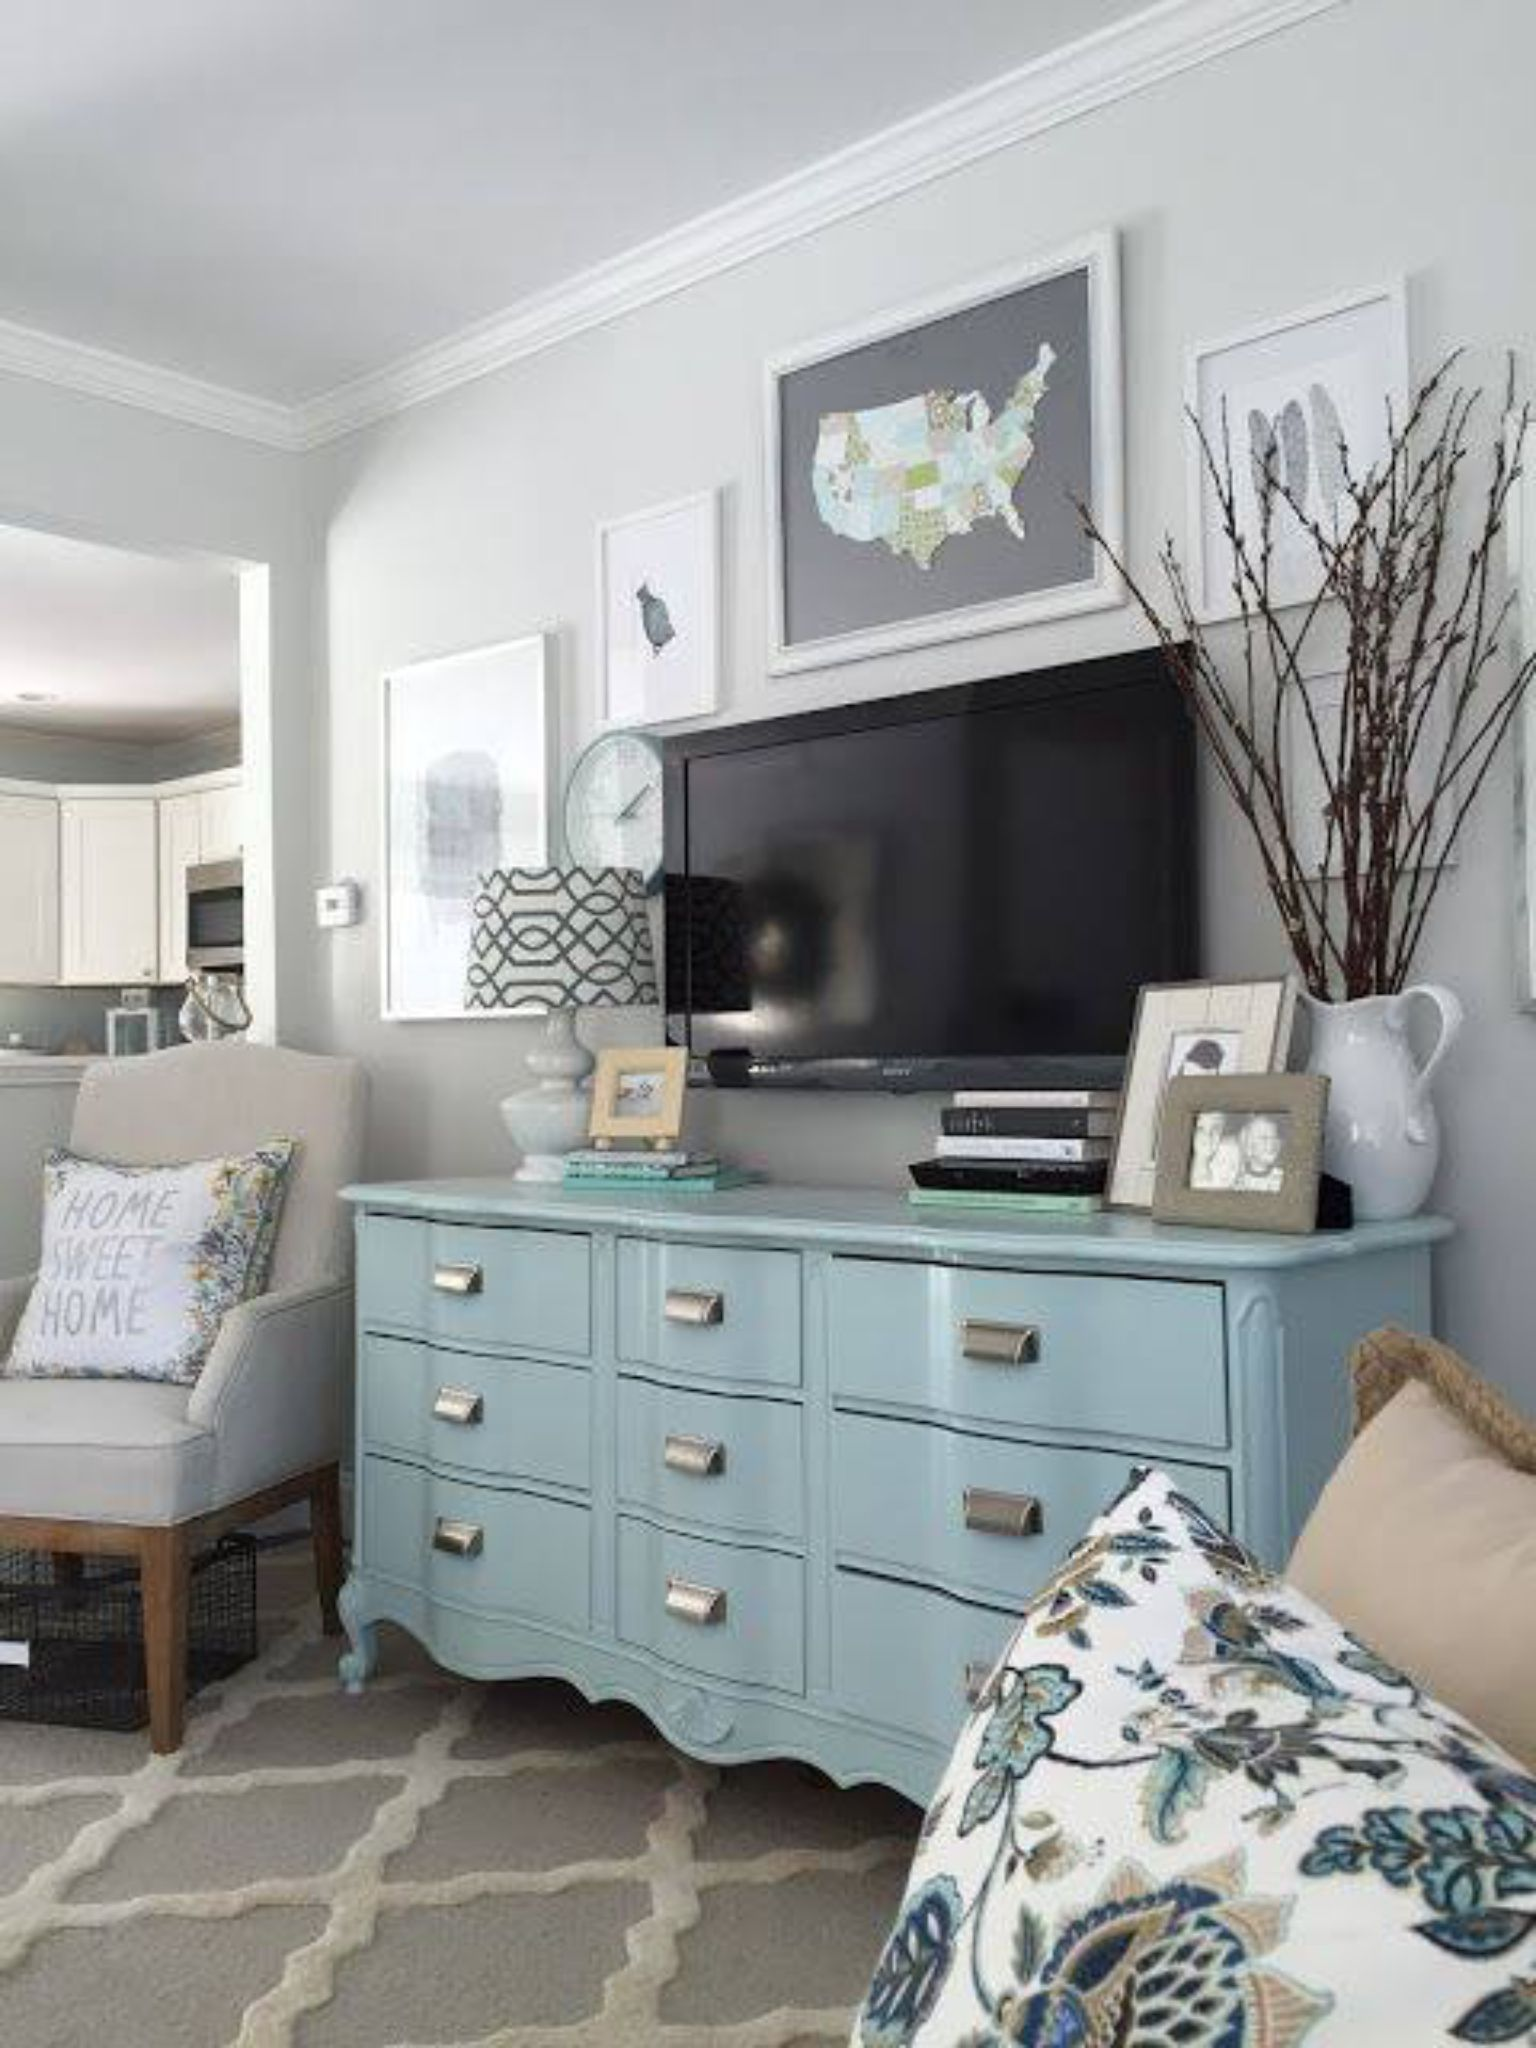 living room dressers carpet ideas for rooms painted dresser in shabby chic